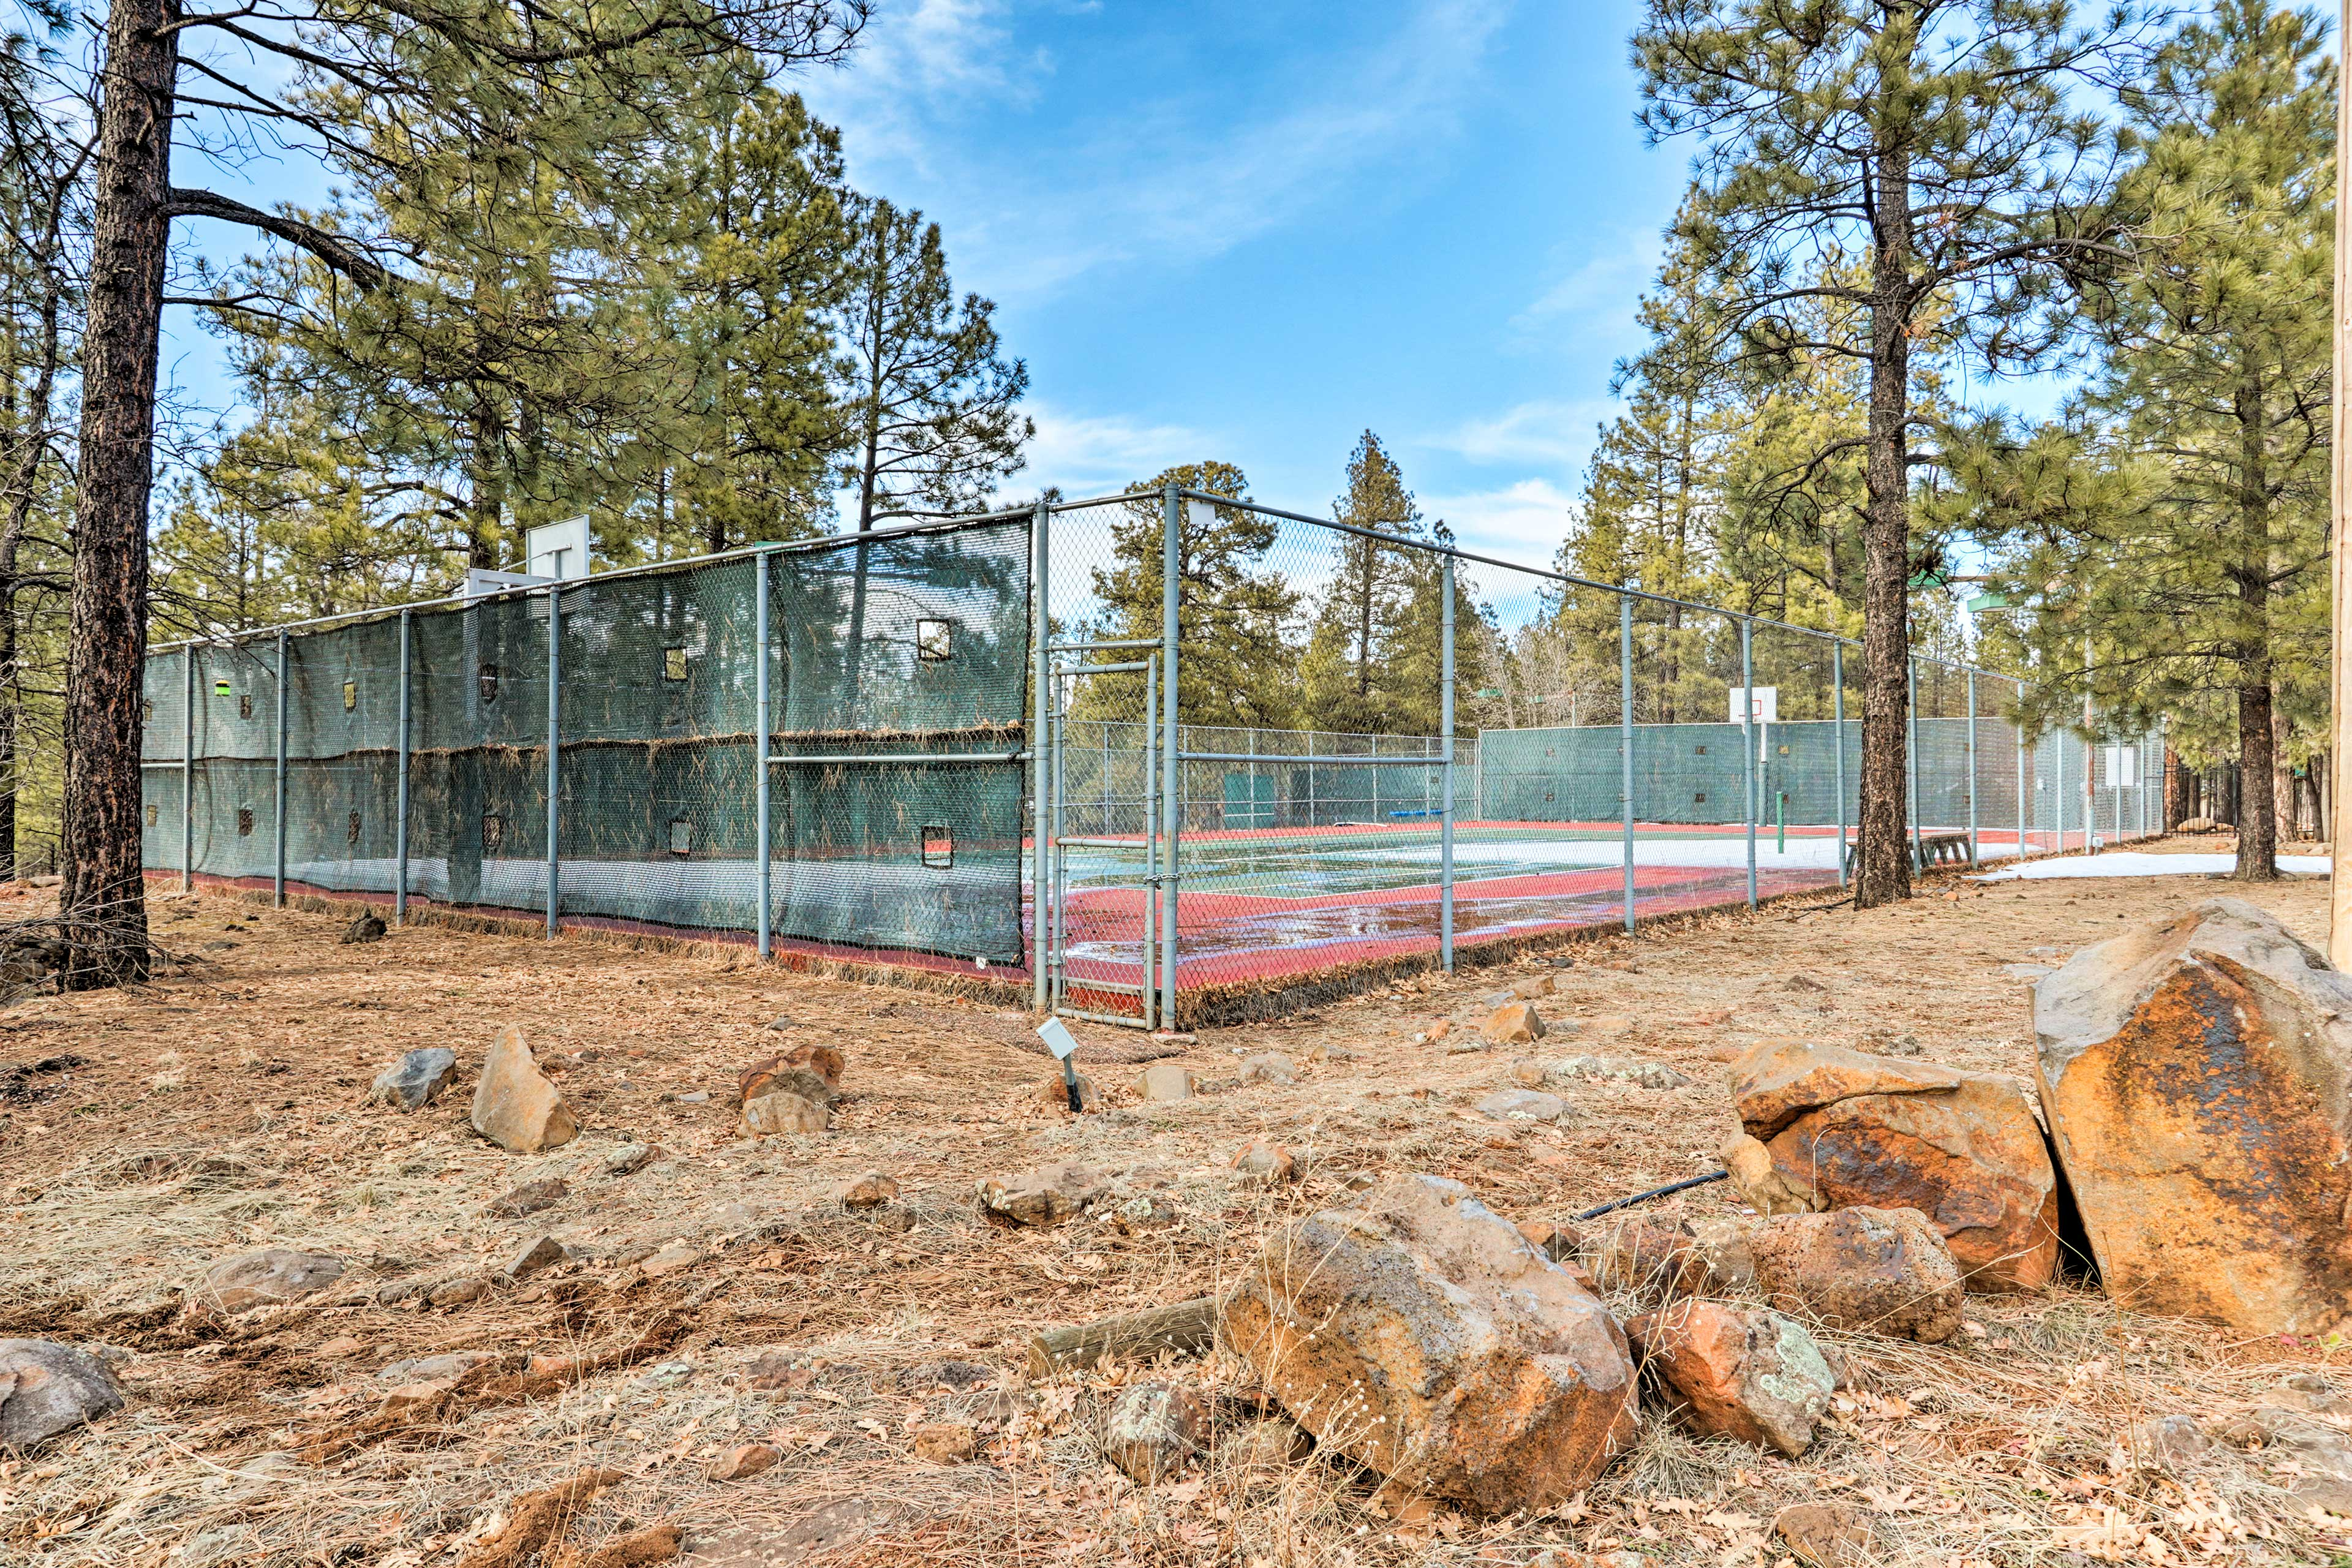 Perfect your serve and tennis skills on one of the available courts!